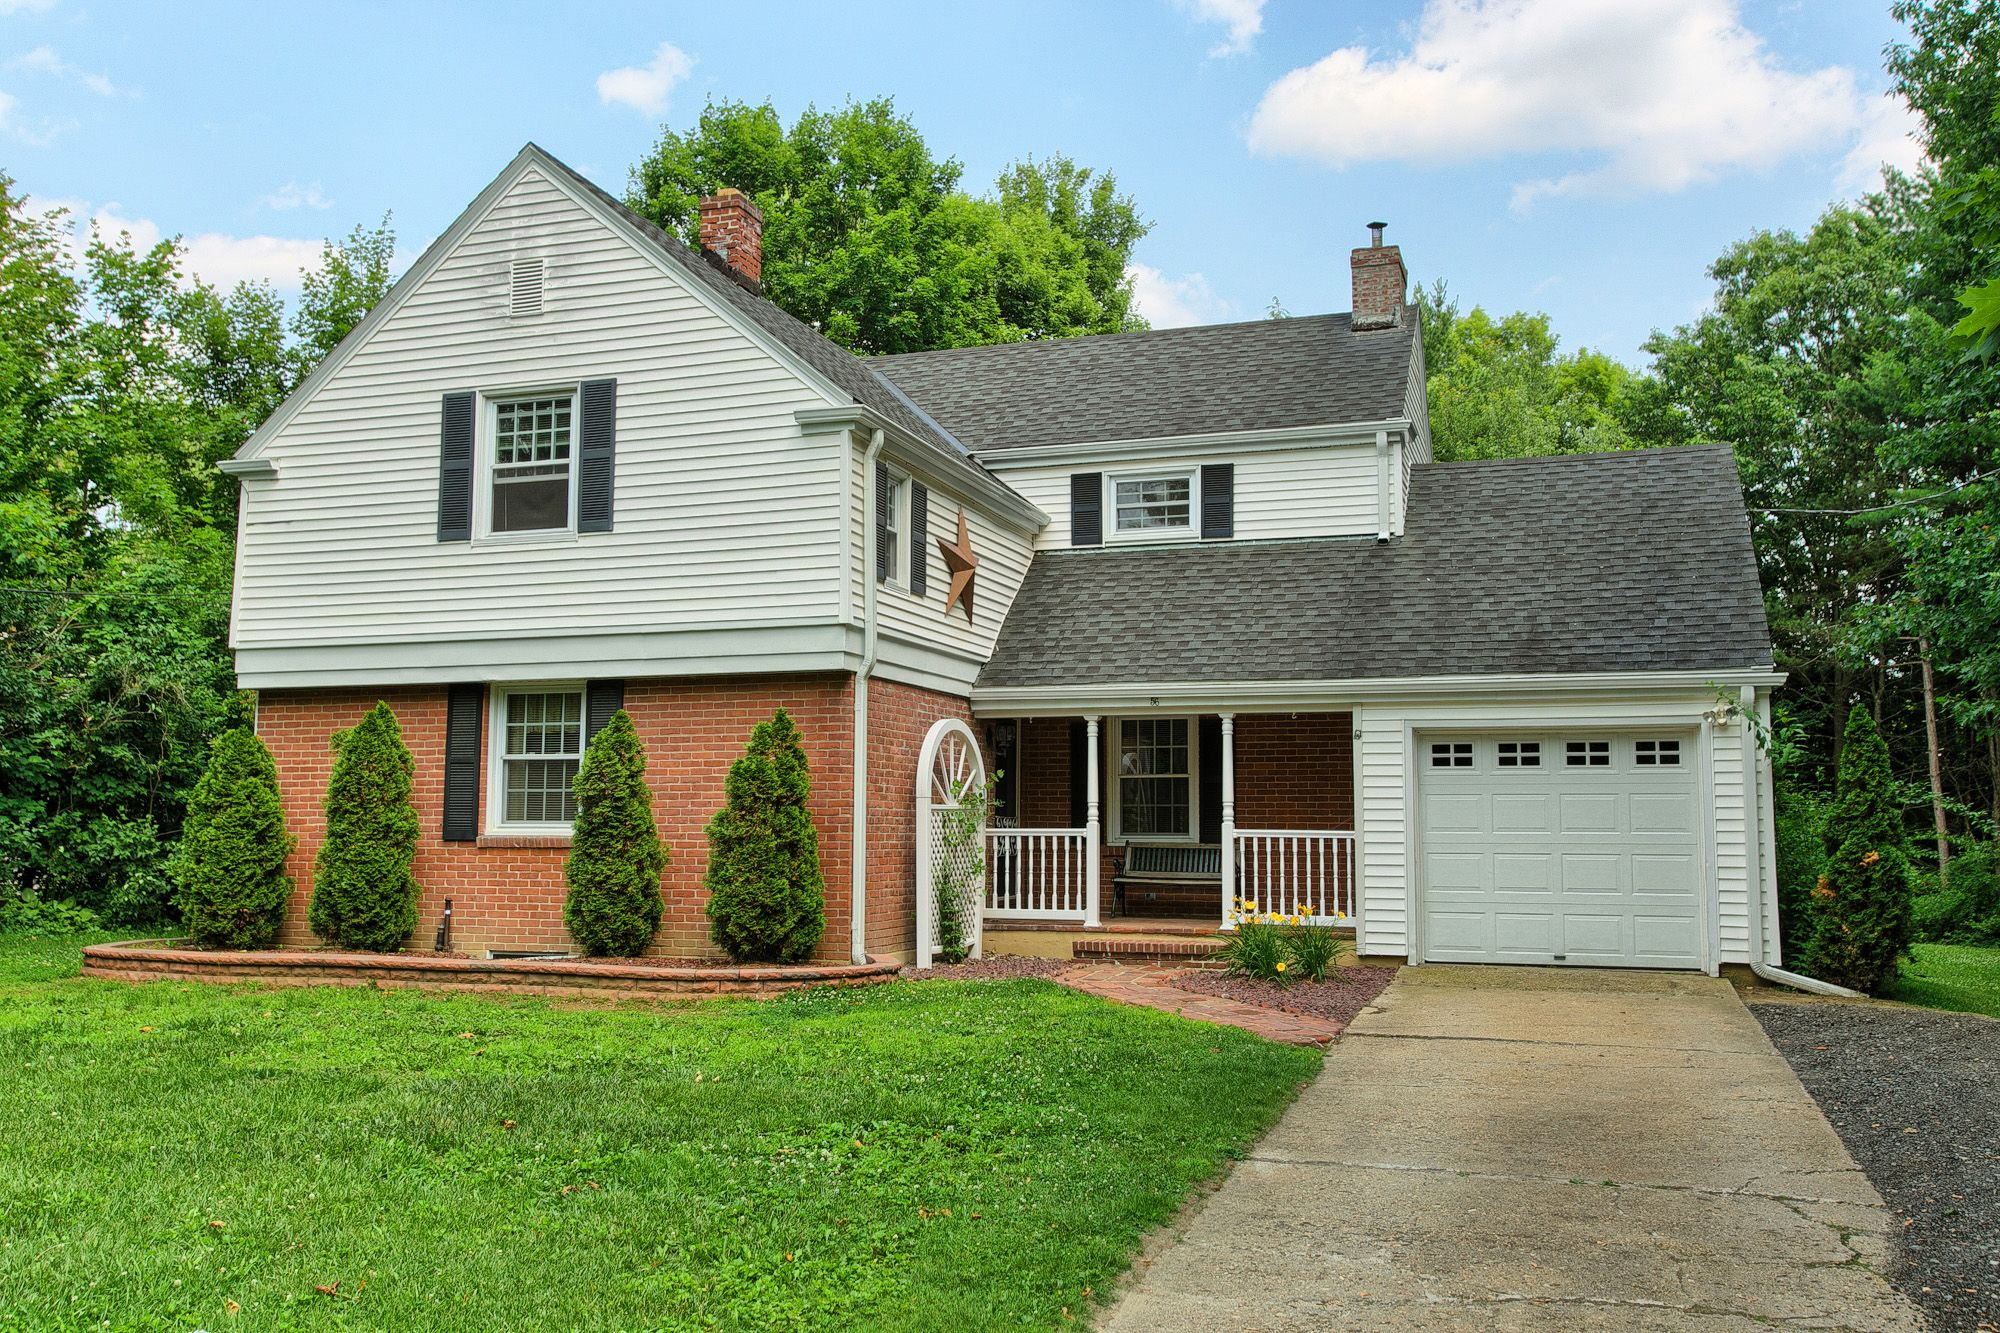 Newly listed, 3 bed, 1.5 bath colonial. Offering hardwood floors throughout. Sun room, formal dining room, living room. Three spacious bedrooms. Large yard, in ground pool, and garage parking!